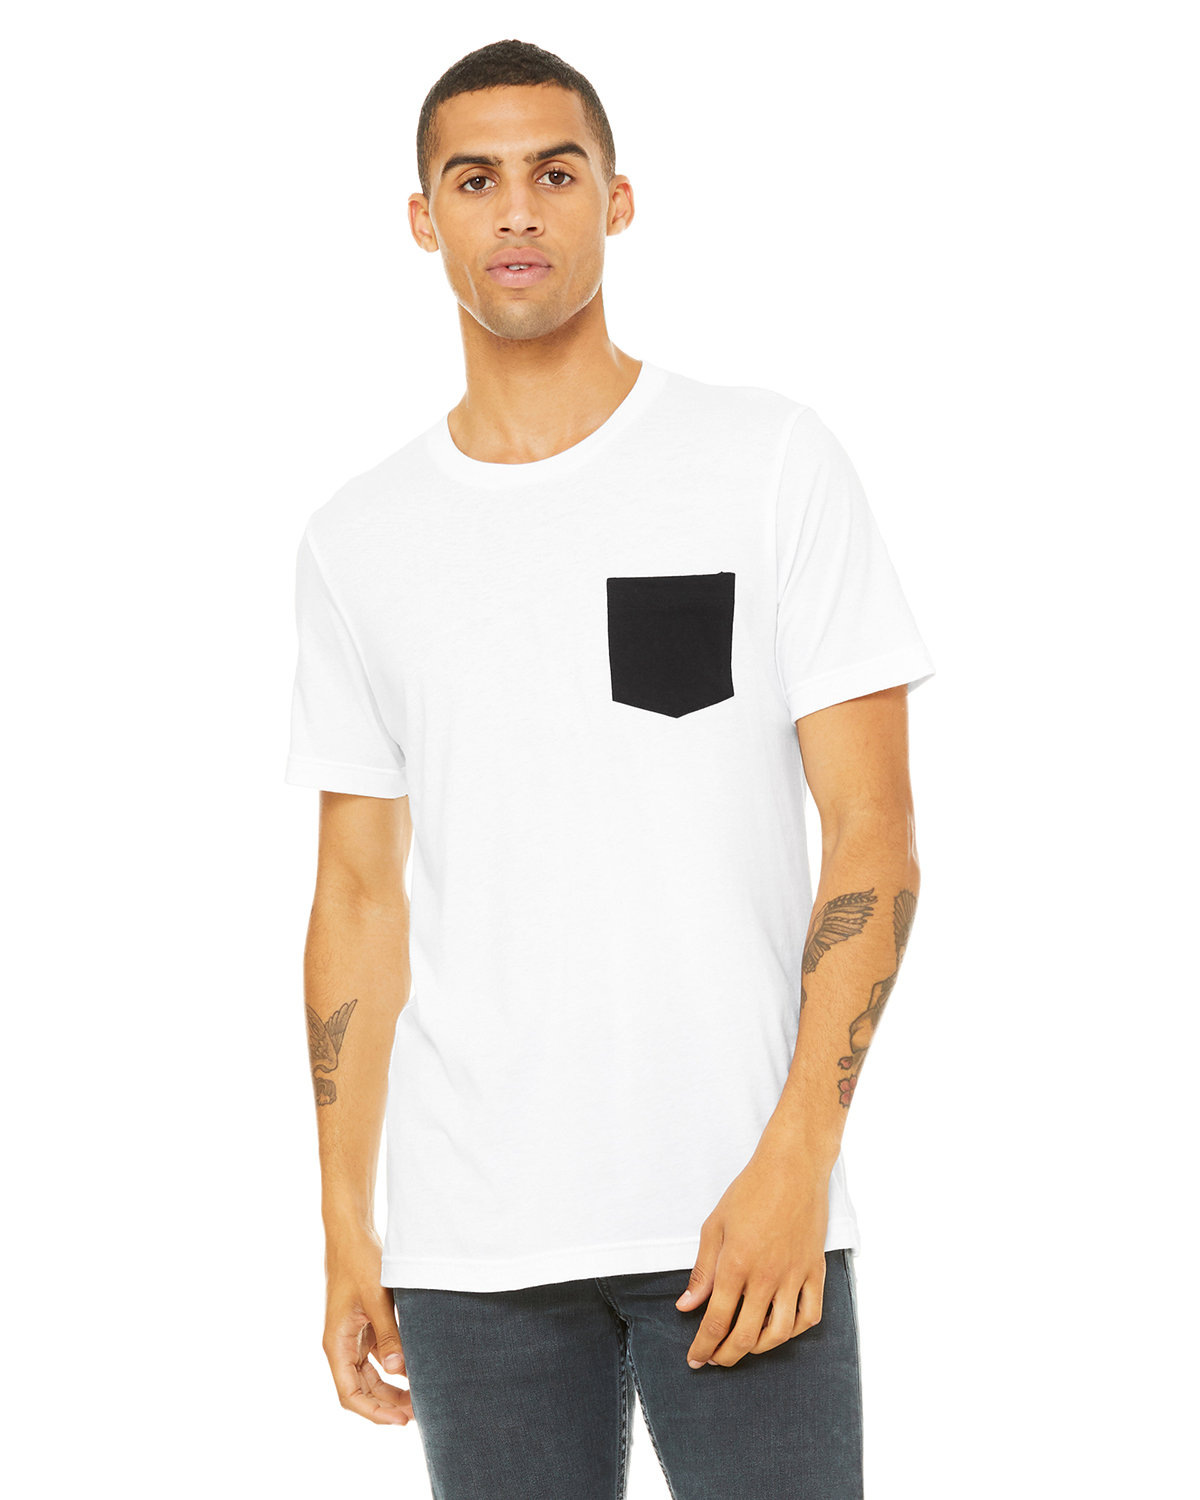 White shirt black pocket south park t shirts for Pocket t shirt printing